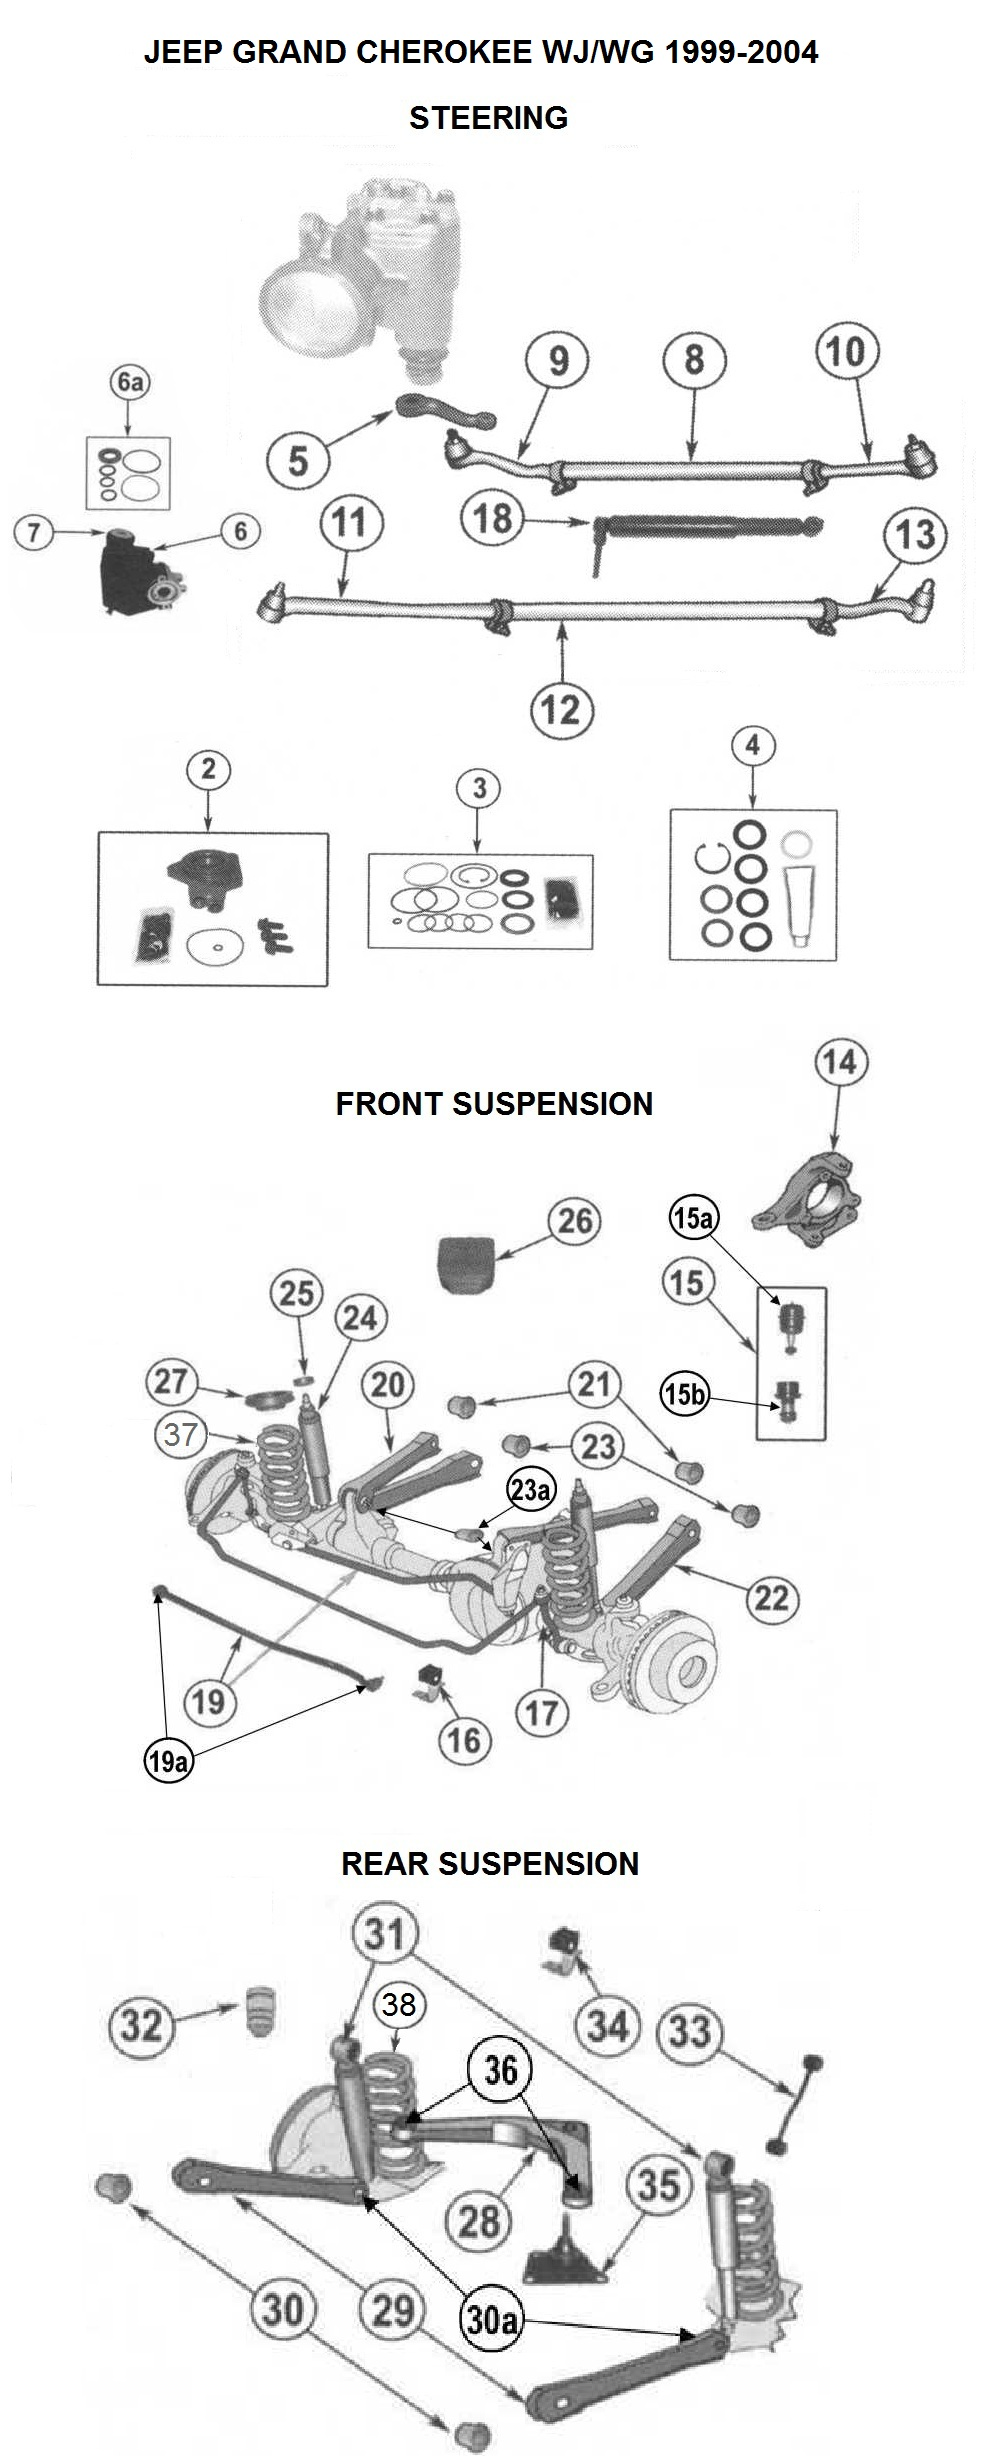 Jeep Wj Diagram Great Design Of Wiring Fuse Cherokee Parts Auto Used Cars Grand Suspension